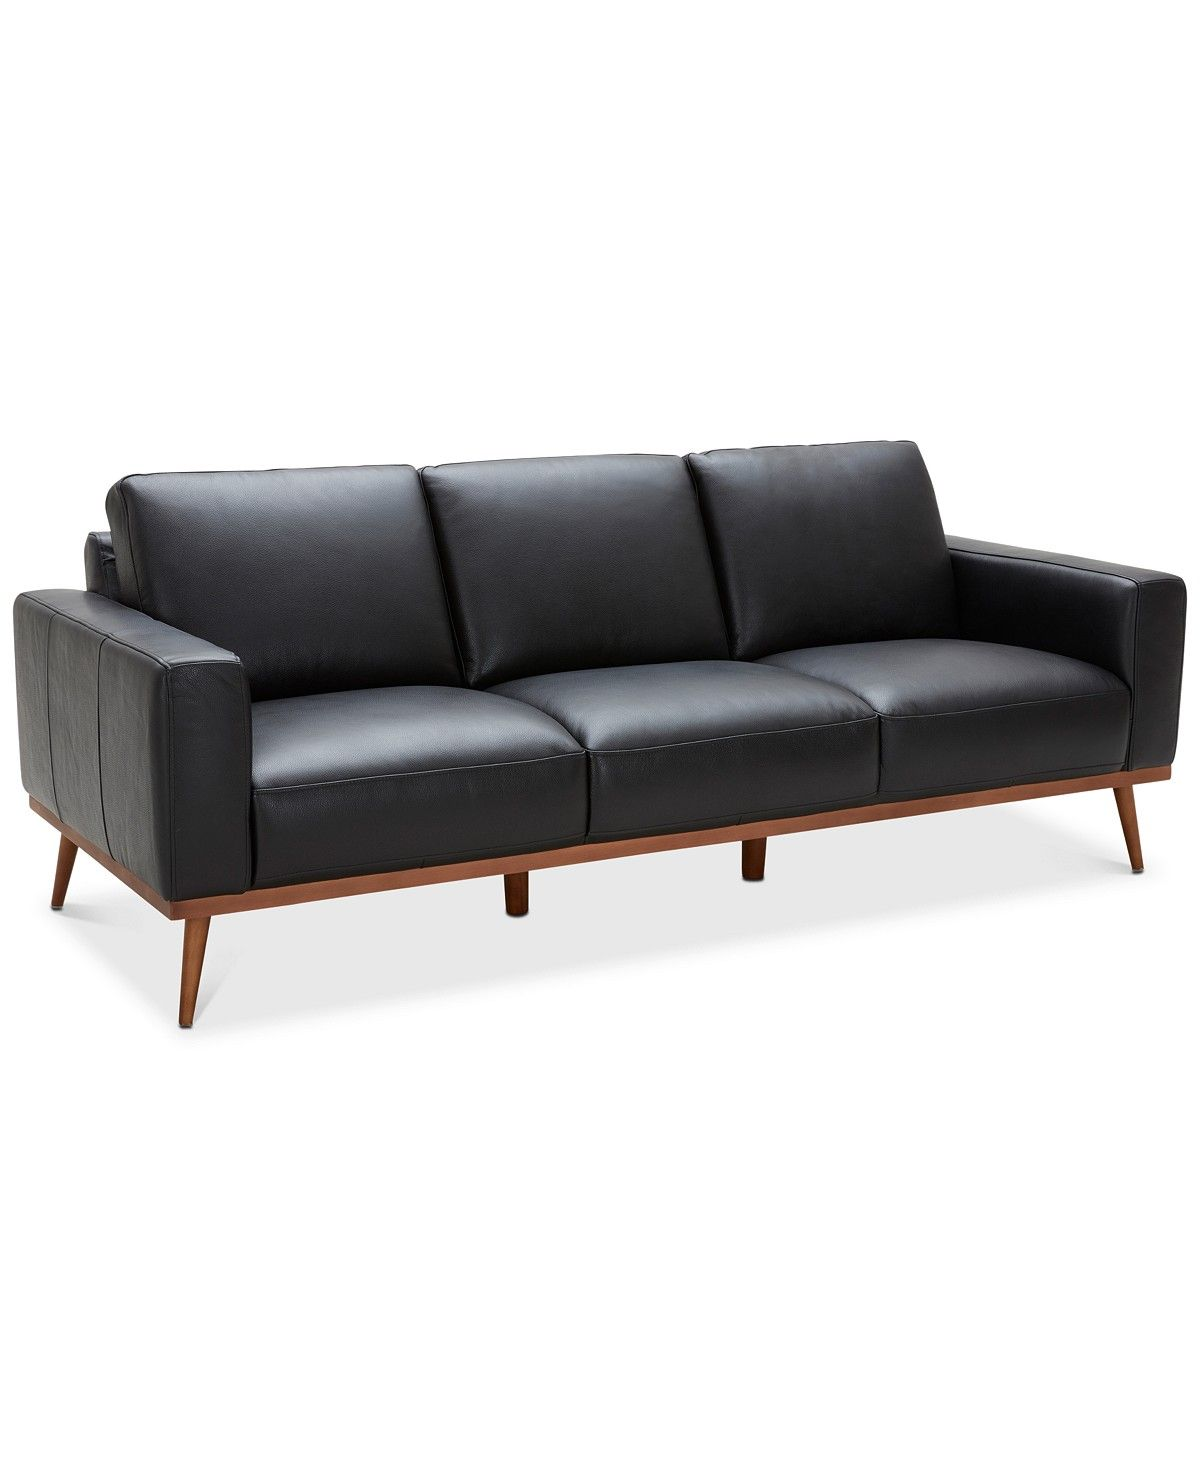 Macys Furniture Clearance: Leather Sofa Set Clearance Top Grain Leather Sofa